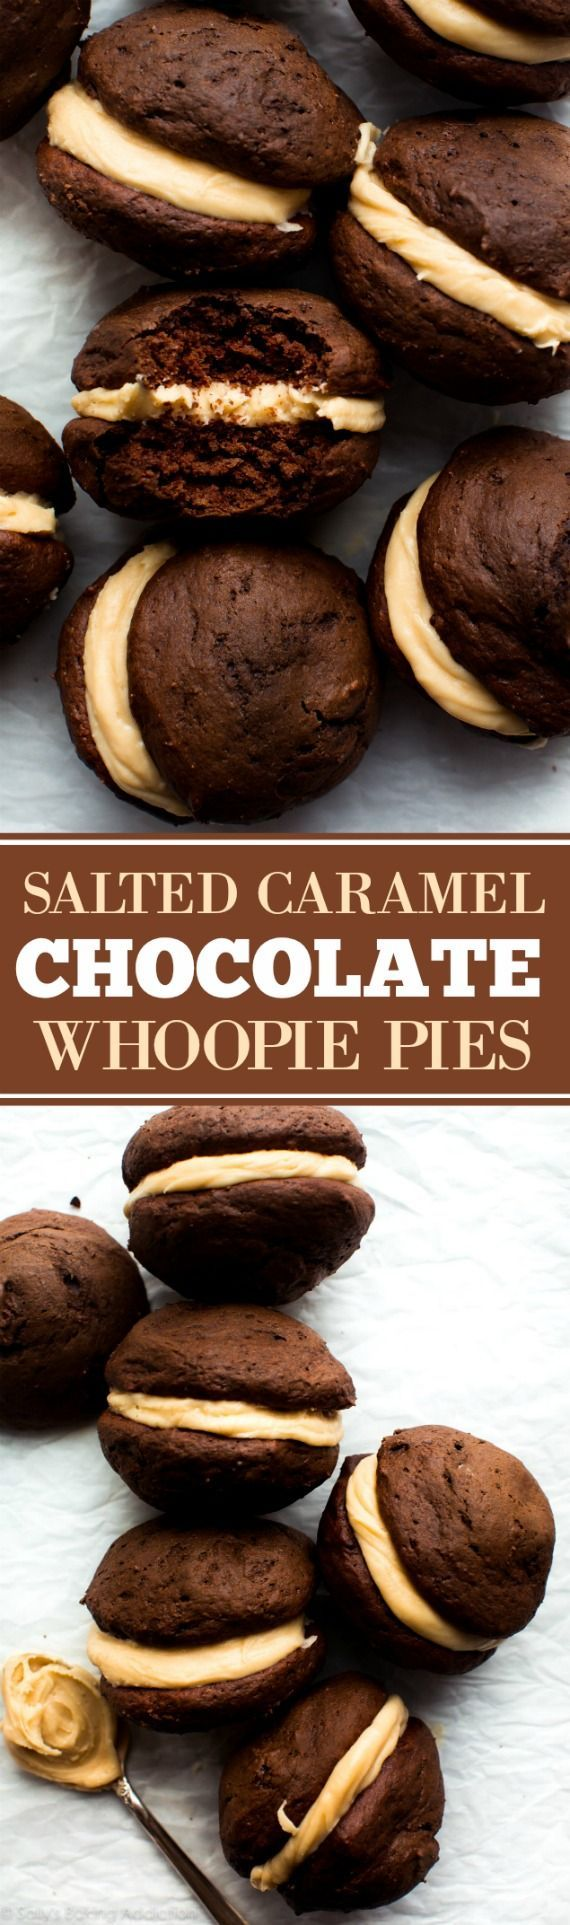 Soft, rich, and moist chocolate whoopie pies with easy salted caramel filling. Indulgent and worth every bite! Recipe on sallysbakingaddiction.com